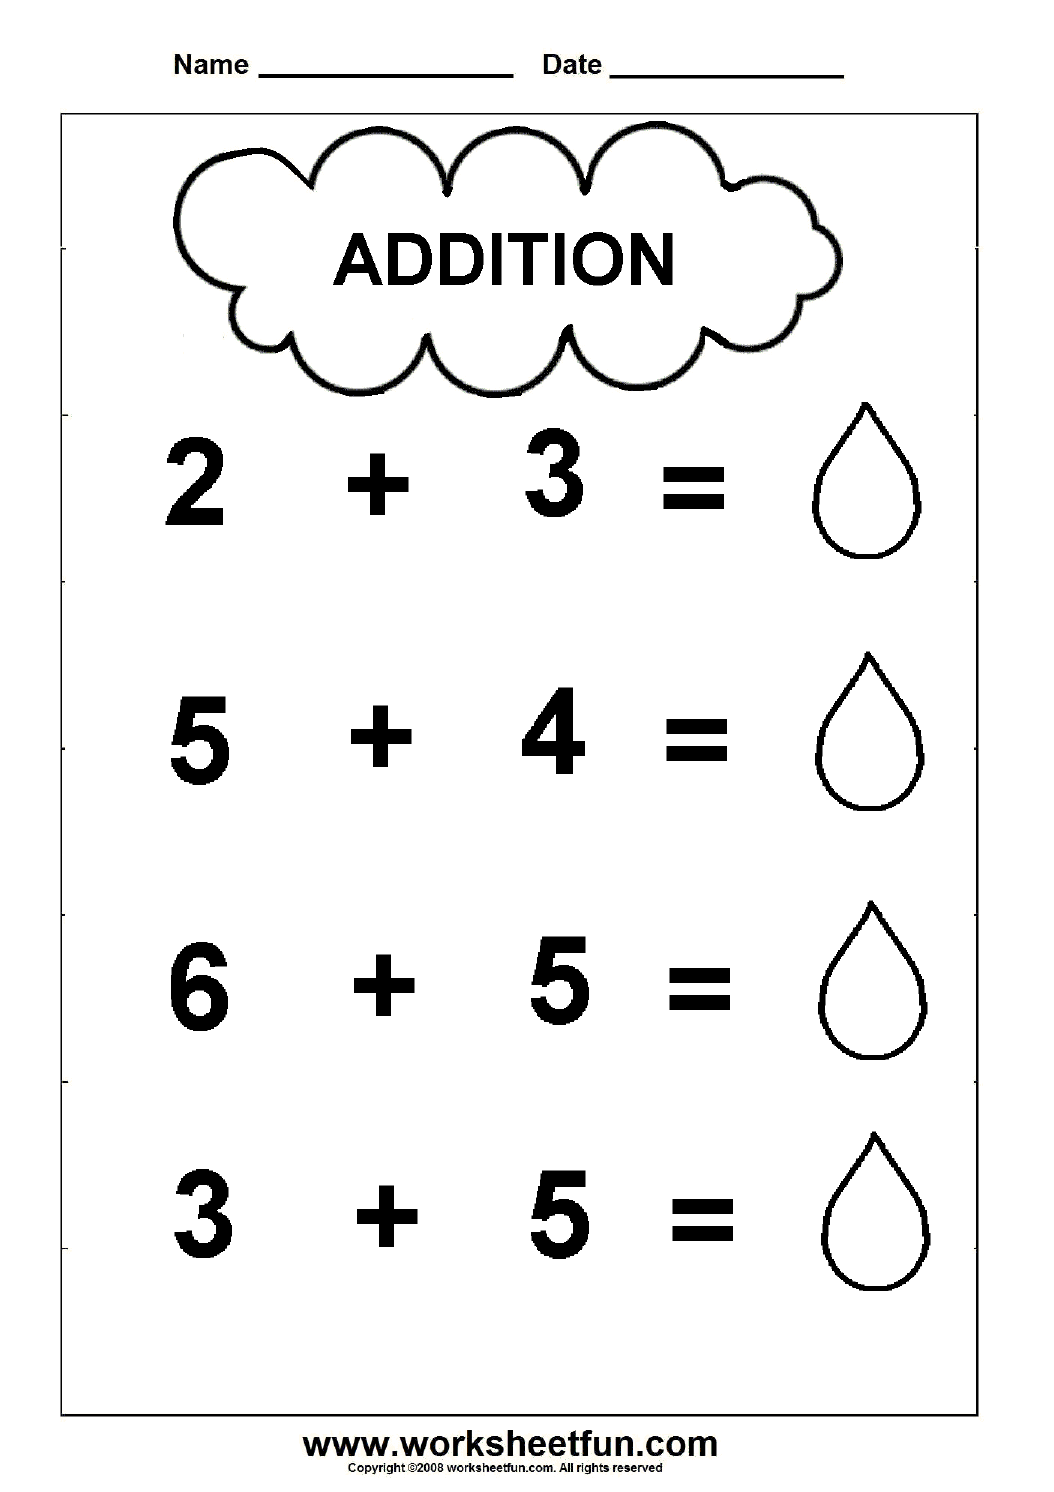 Worksheets Basic Addition Worksheets addition 2 worksheets kindergarten pinterest worksheets